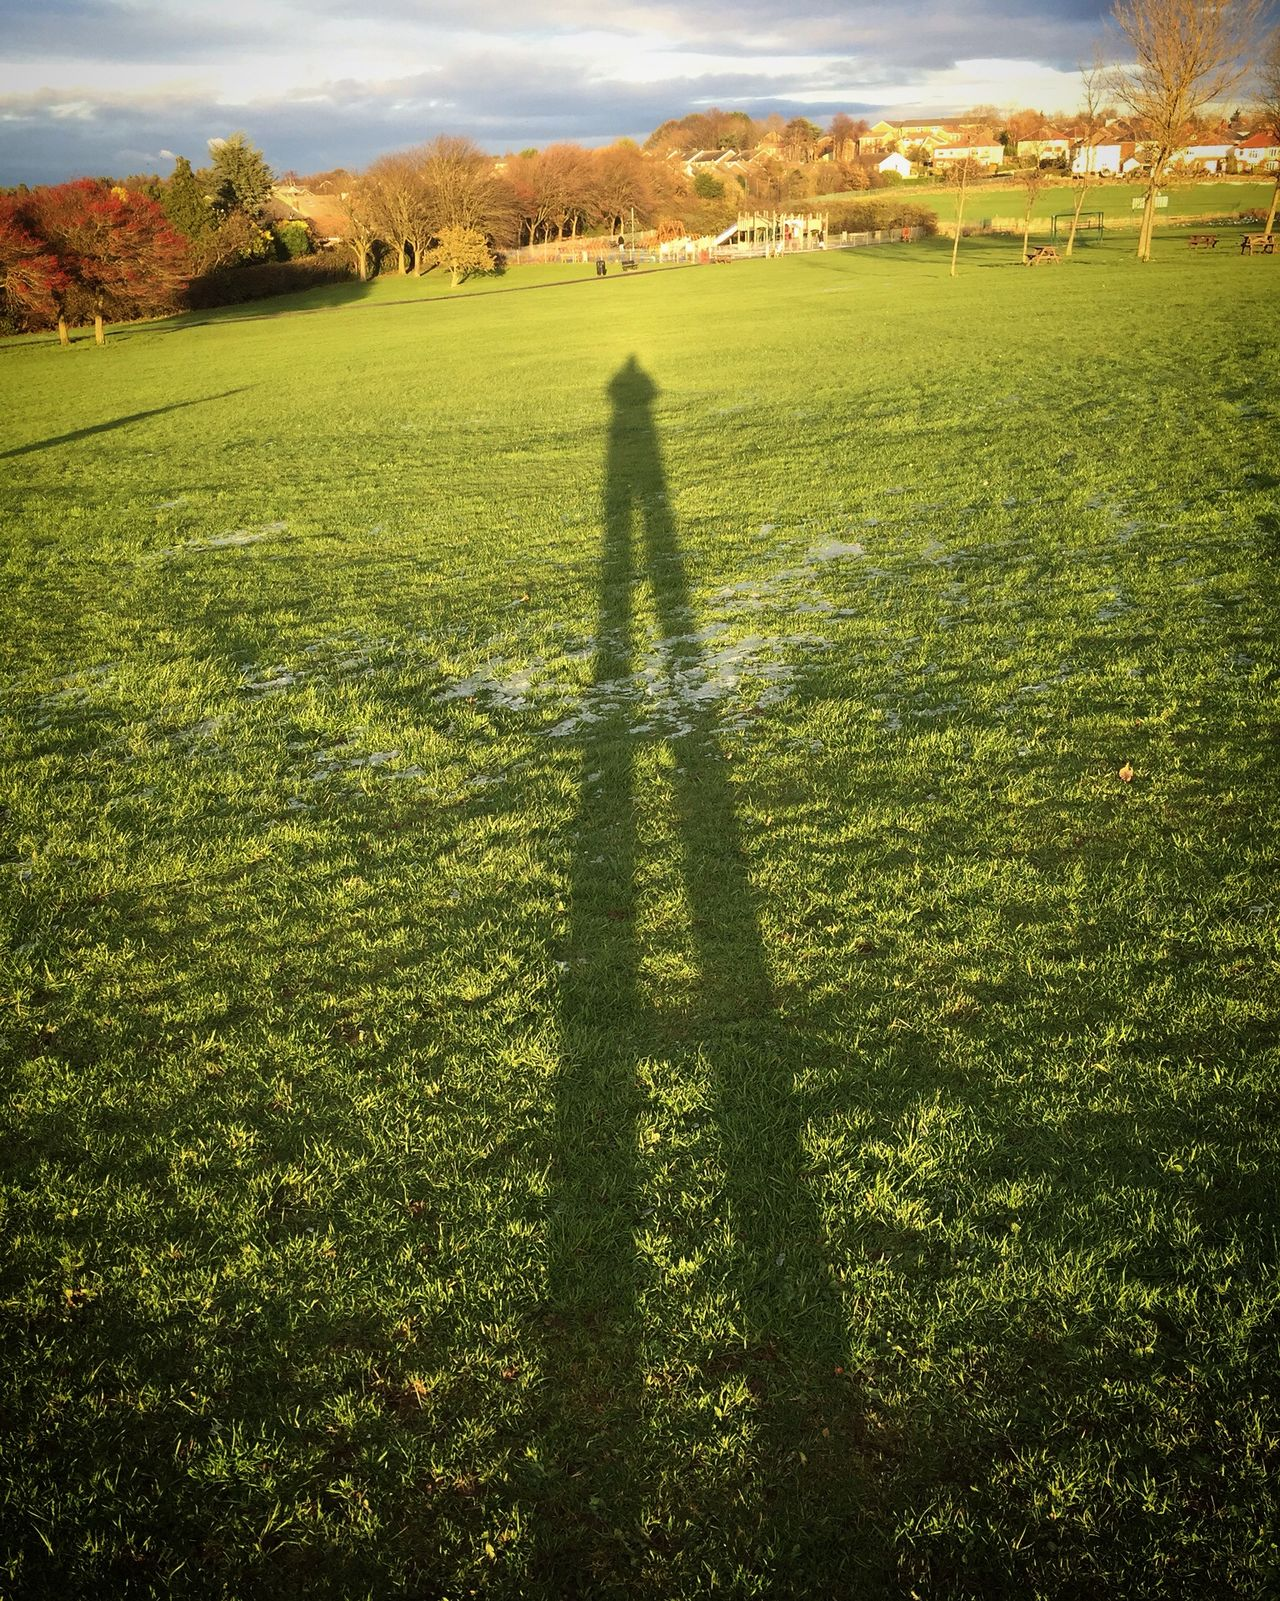 Winters long shadow is almost on us! Abstract Countryside Distant Negative Of Spider Web In Field, John Clark Park, Esto, Florida, Summertime Outdoors Remote Selfie Shadow Sheffield Tranquil Scene Winter Wintershadow